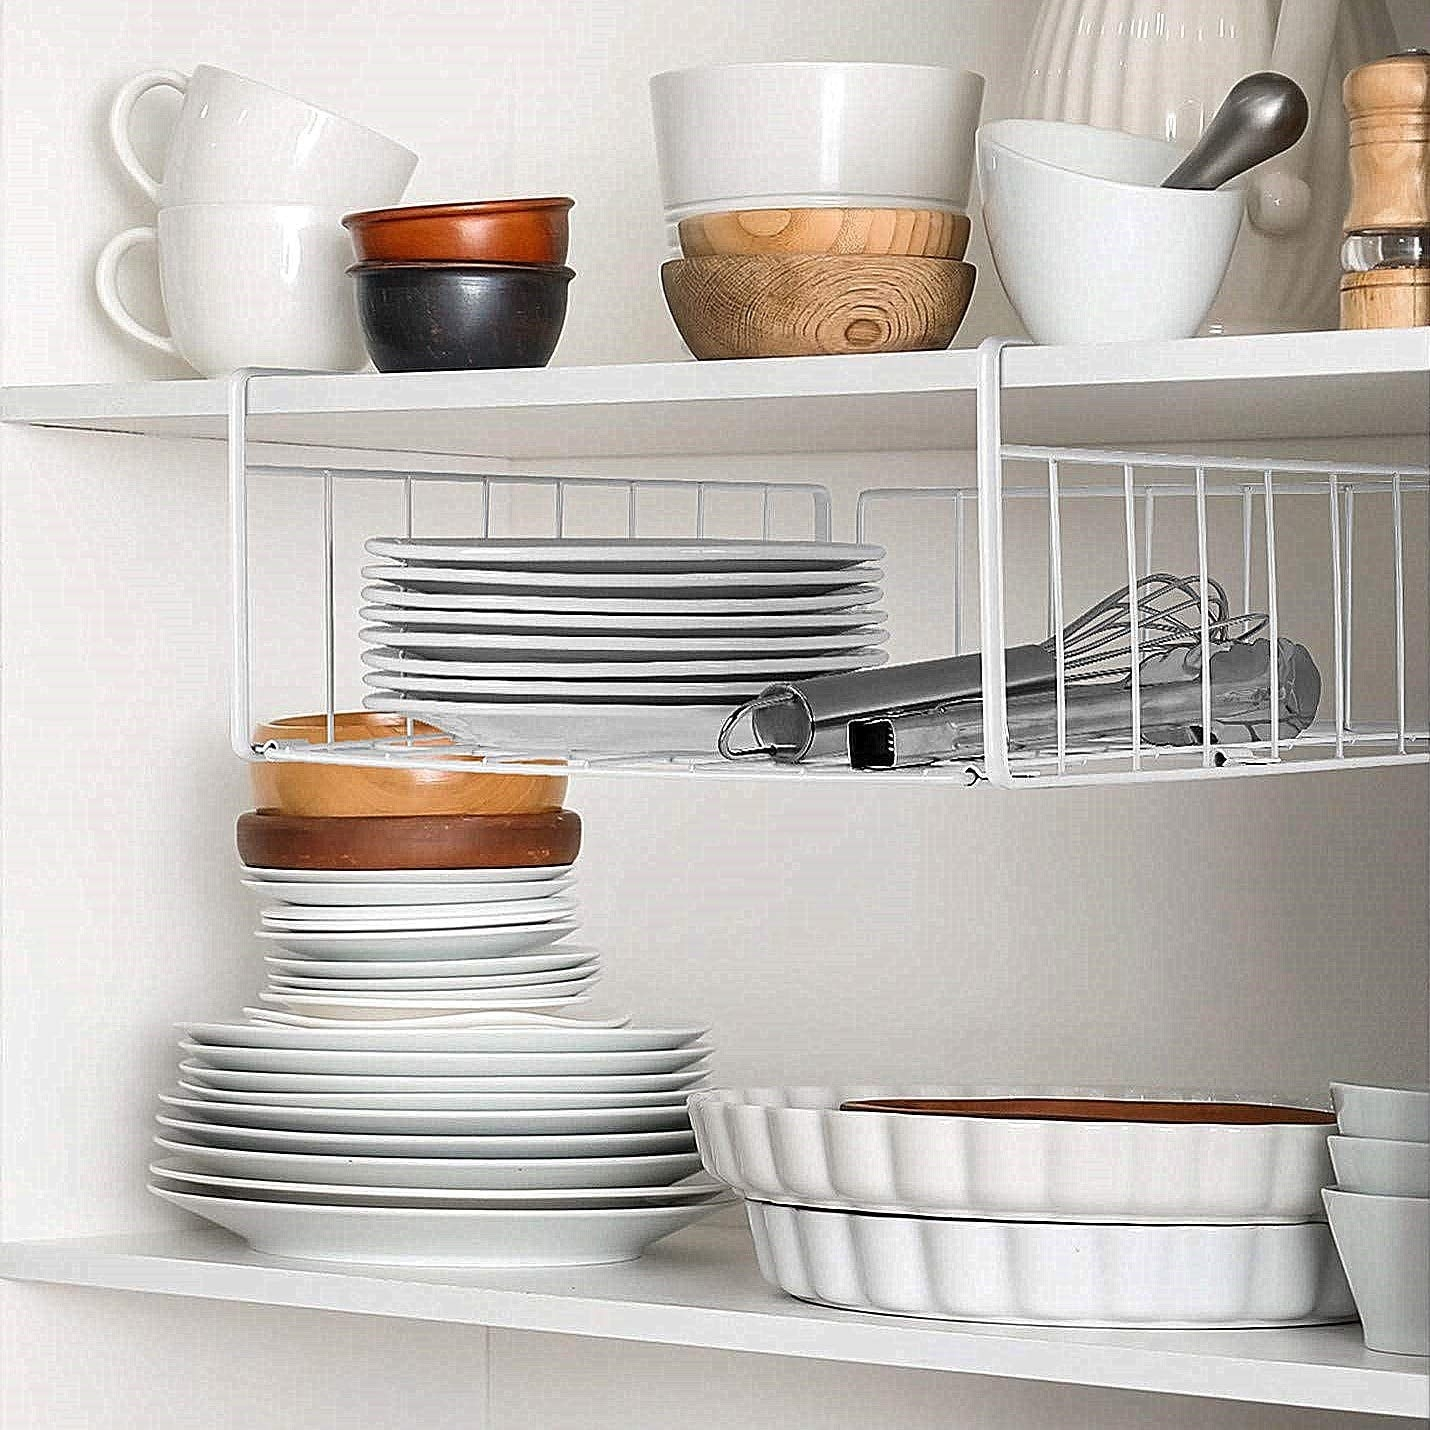 A white wire rack organizer under a shelf with plates on it